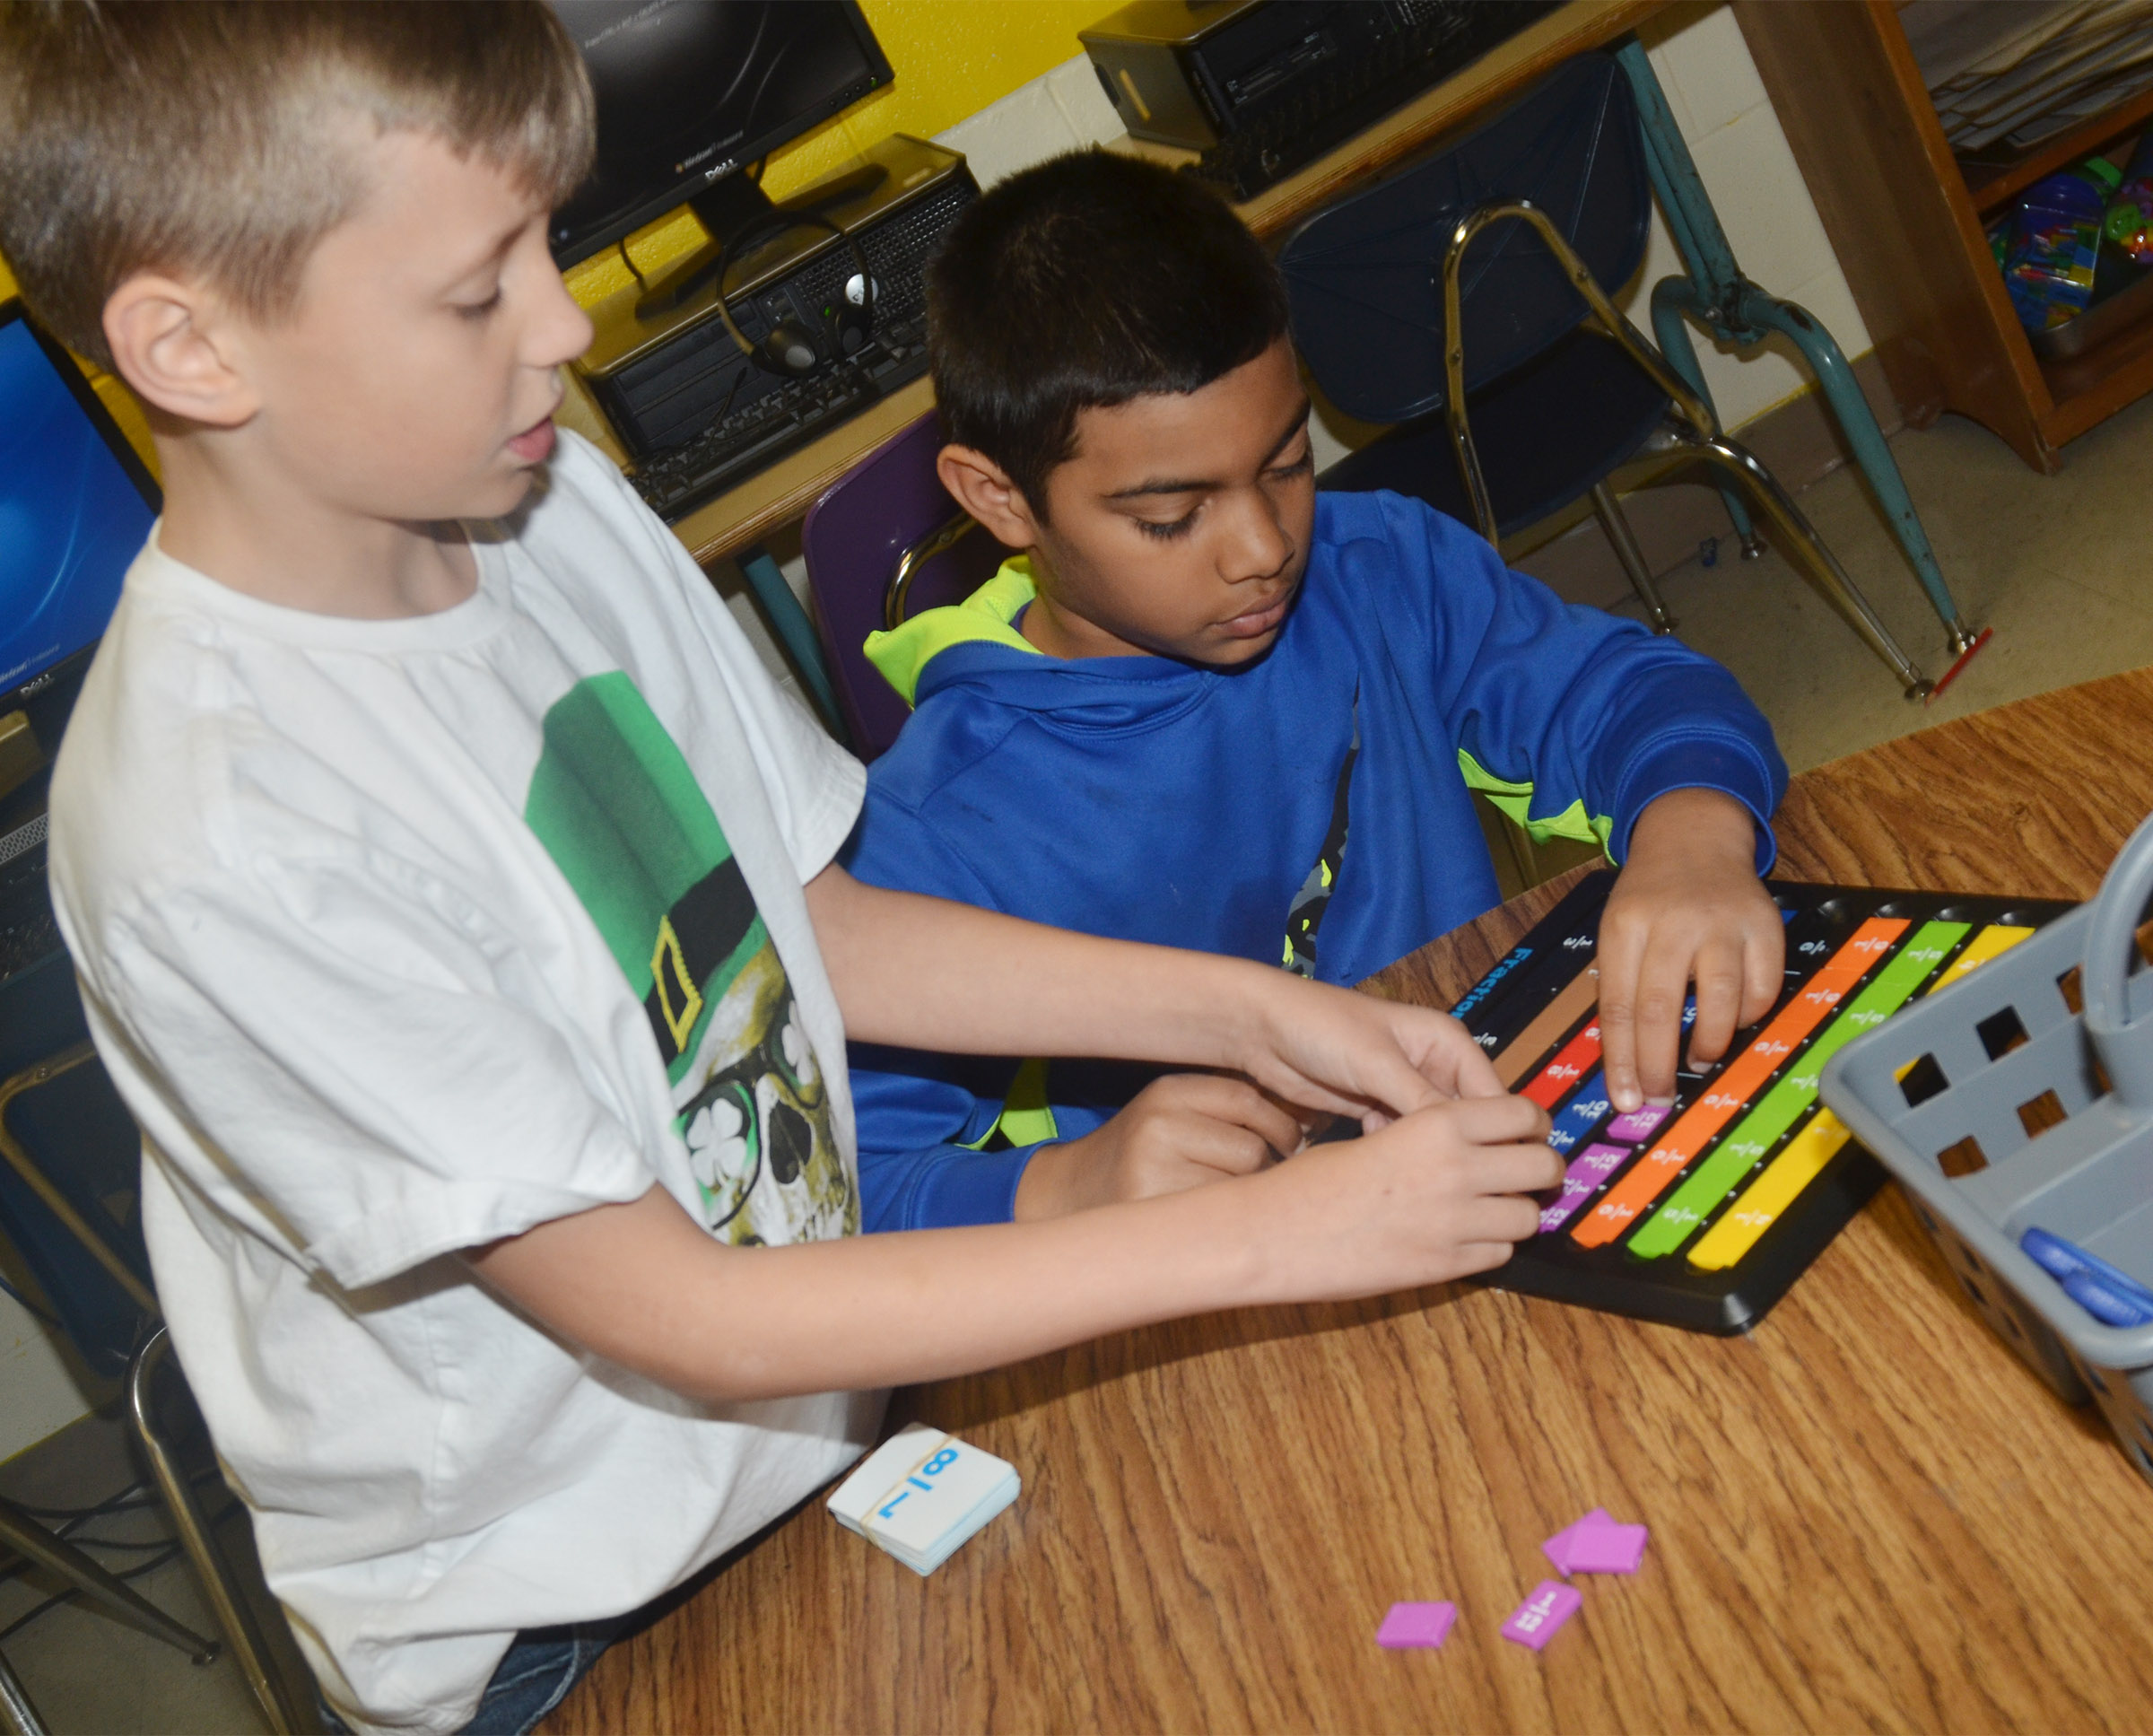 CES third-graders Cameron Taylor, at left, and LaDainien Smith use a math game to study fractions.